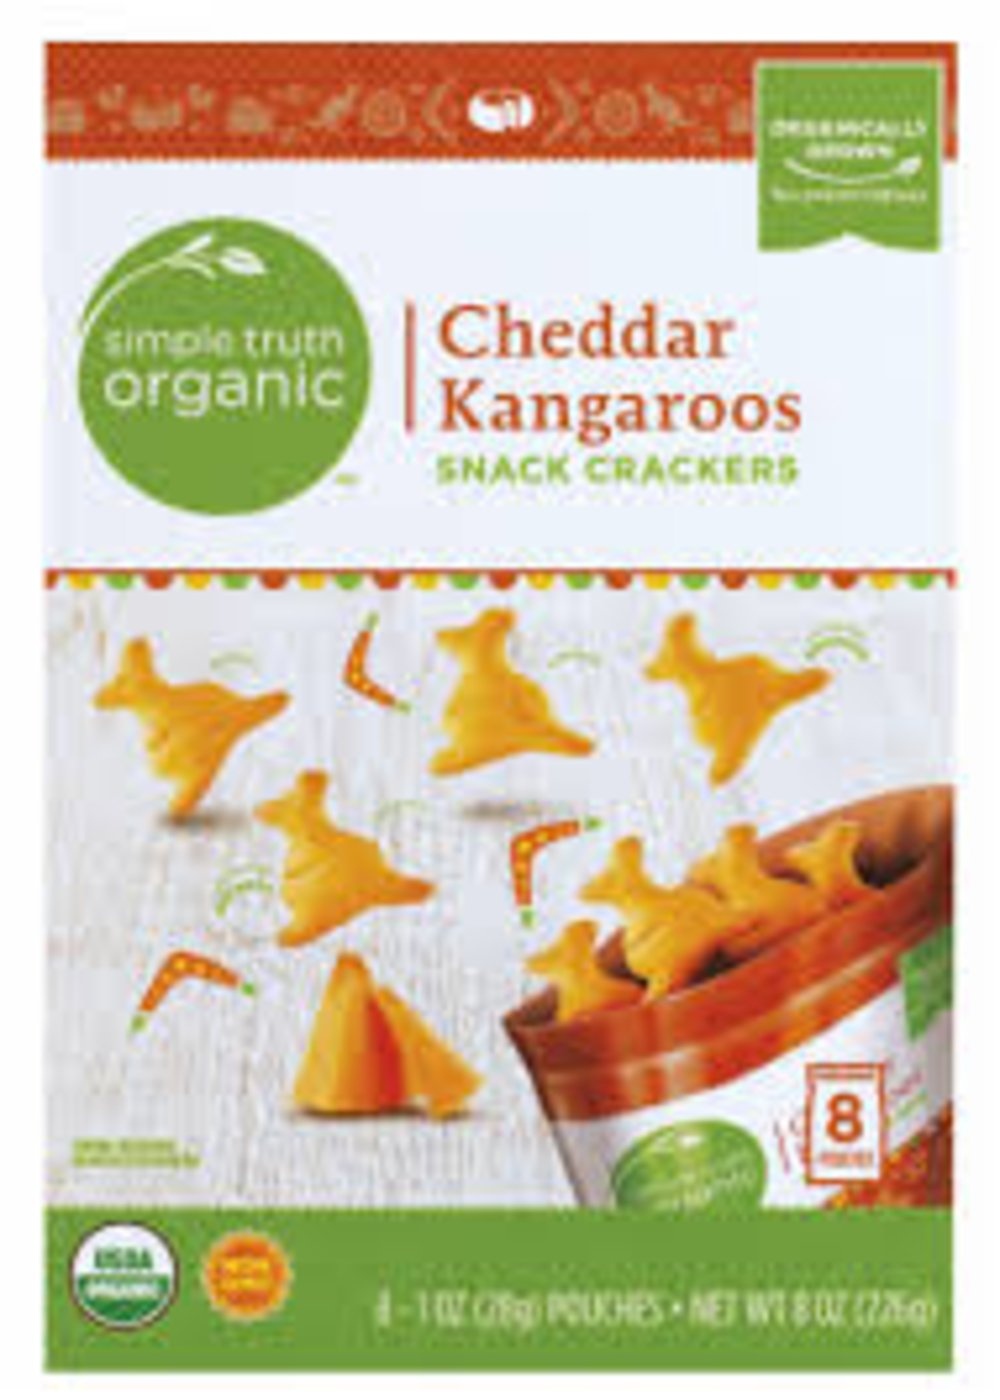 Simple Truth Organic Cheddar Kangaroos Snack Crackers 6.6 Ounce (Pack of 3)